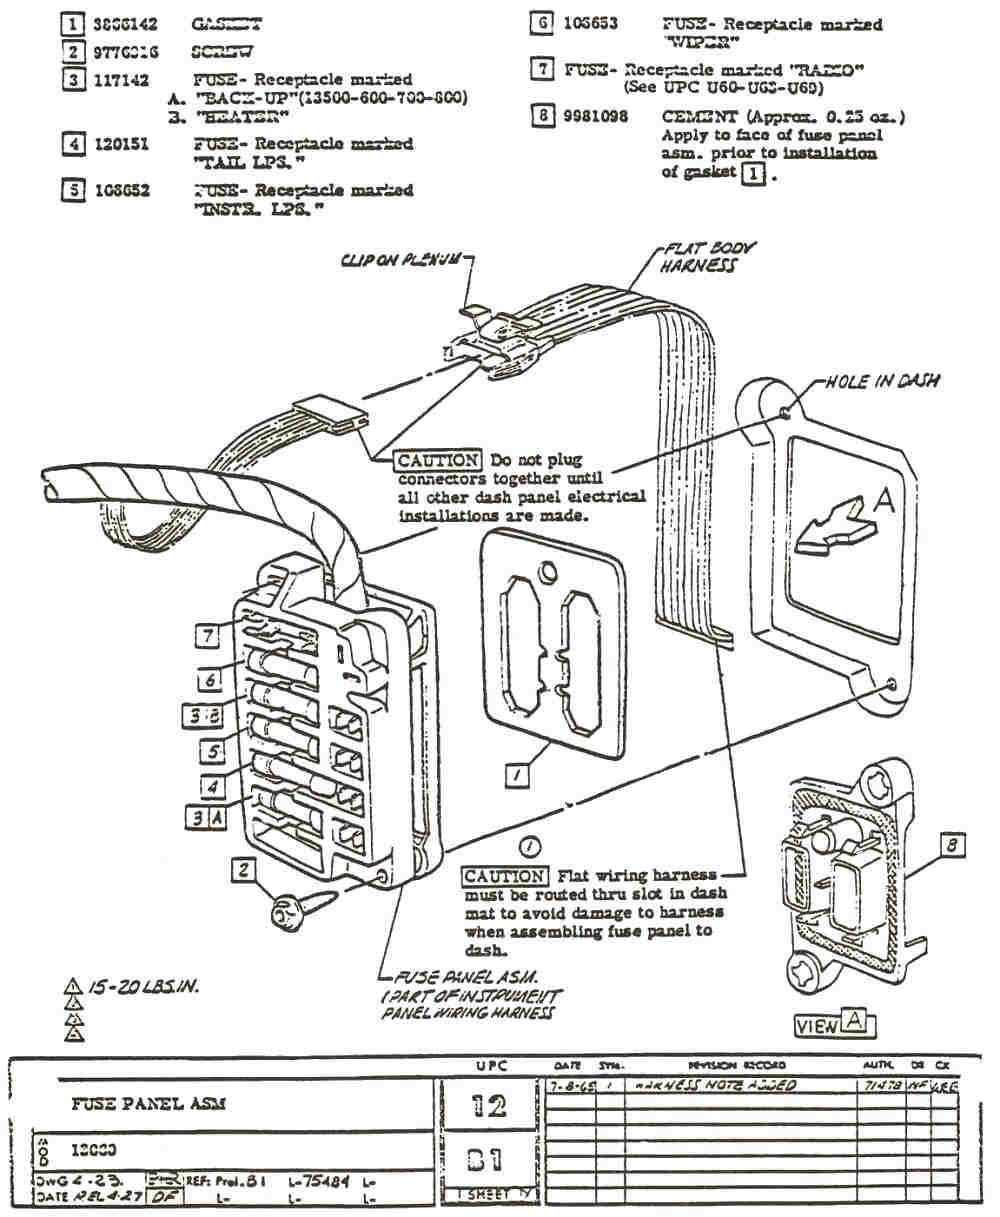 12b1 1966 corvette headlight wiring diagram at ww w freeautoresponder co